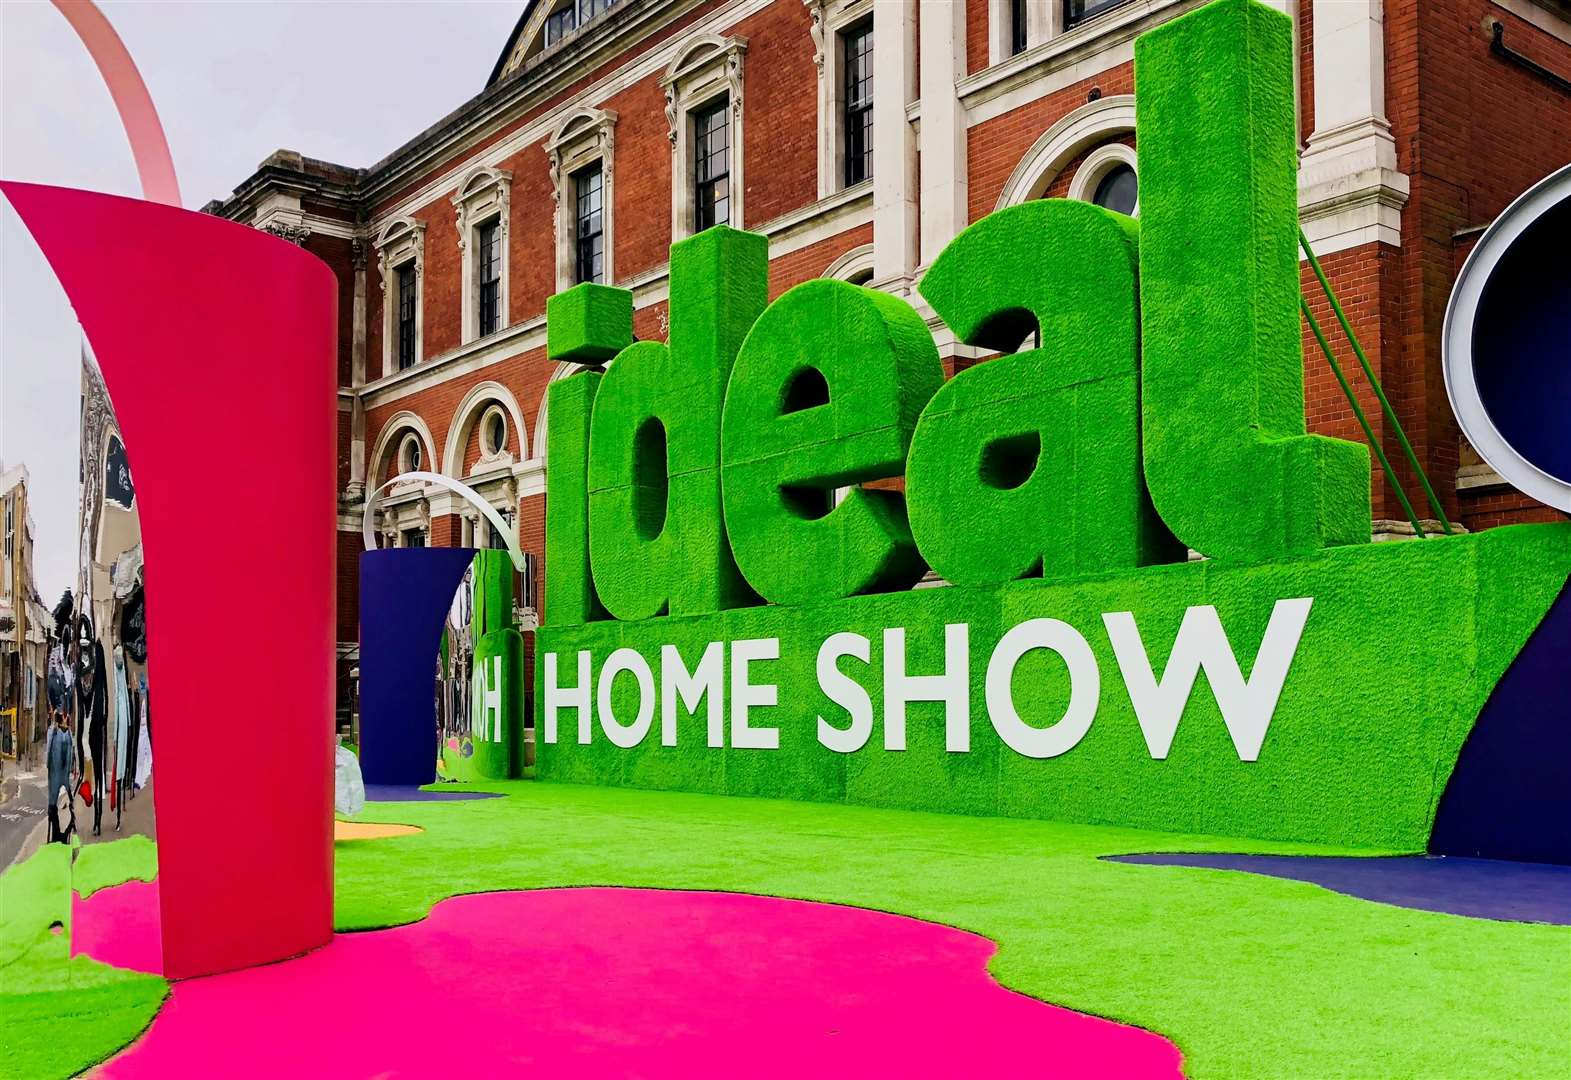 How to claim free tickets to the Ideal Home Show